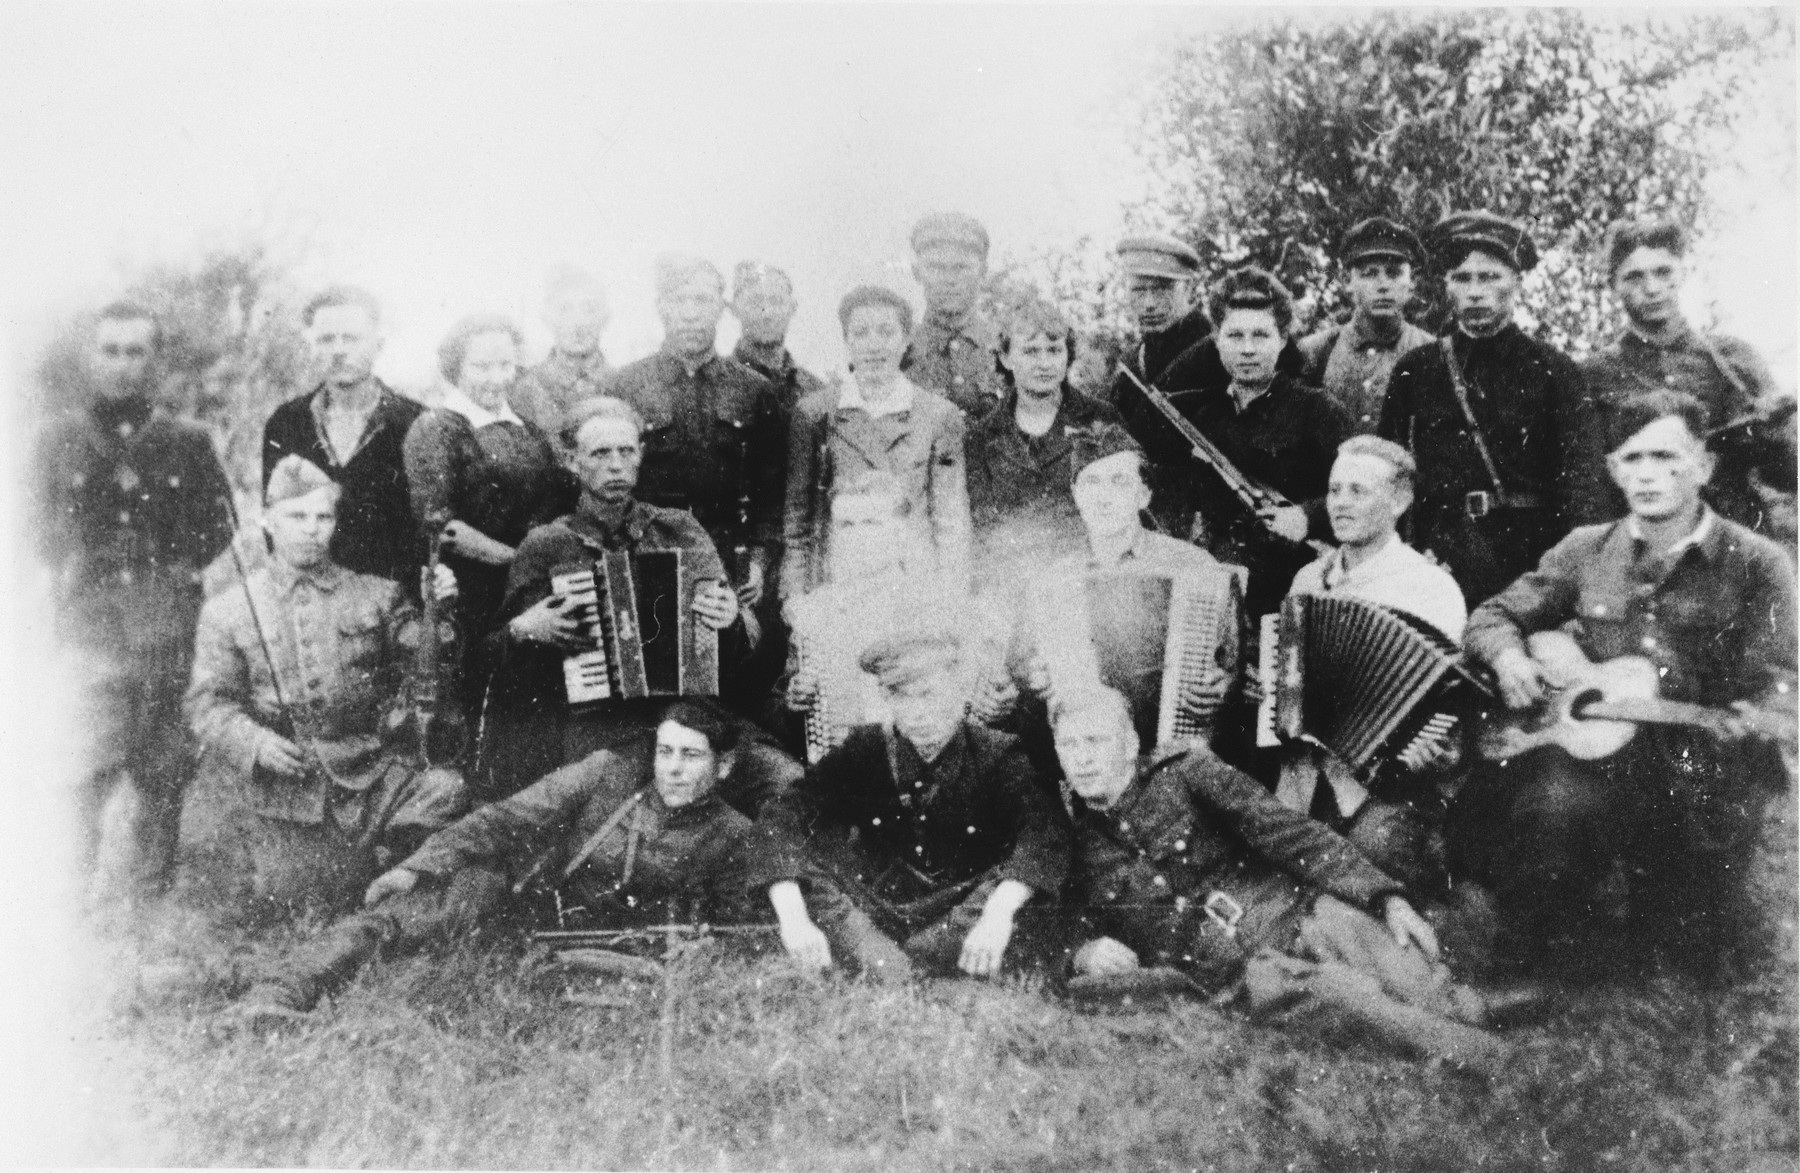 Group portrait of a Jewish partisan musical troupe in the Narocz Forest in Belorussia.    Among those pictured are Hana Posner (standing in the back row, seventh from the left), her father, Mordechai Posner (fourth from the left) and Yechiel Burgin (sixth from the left).